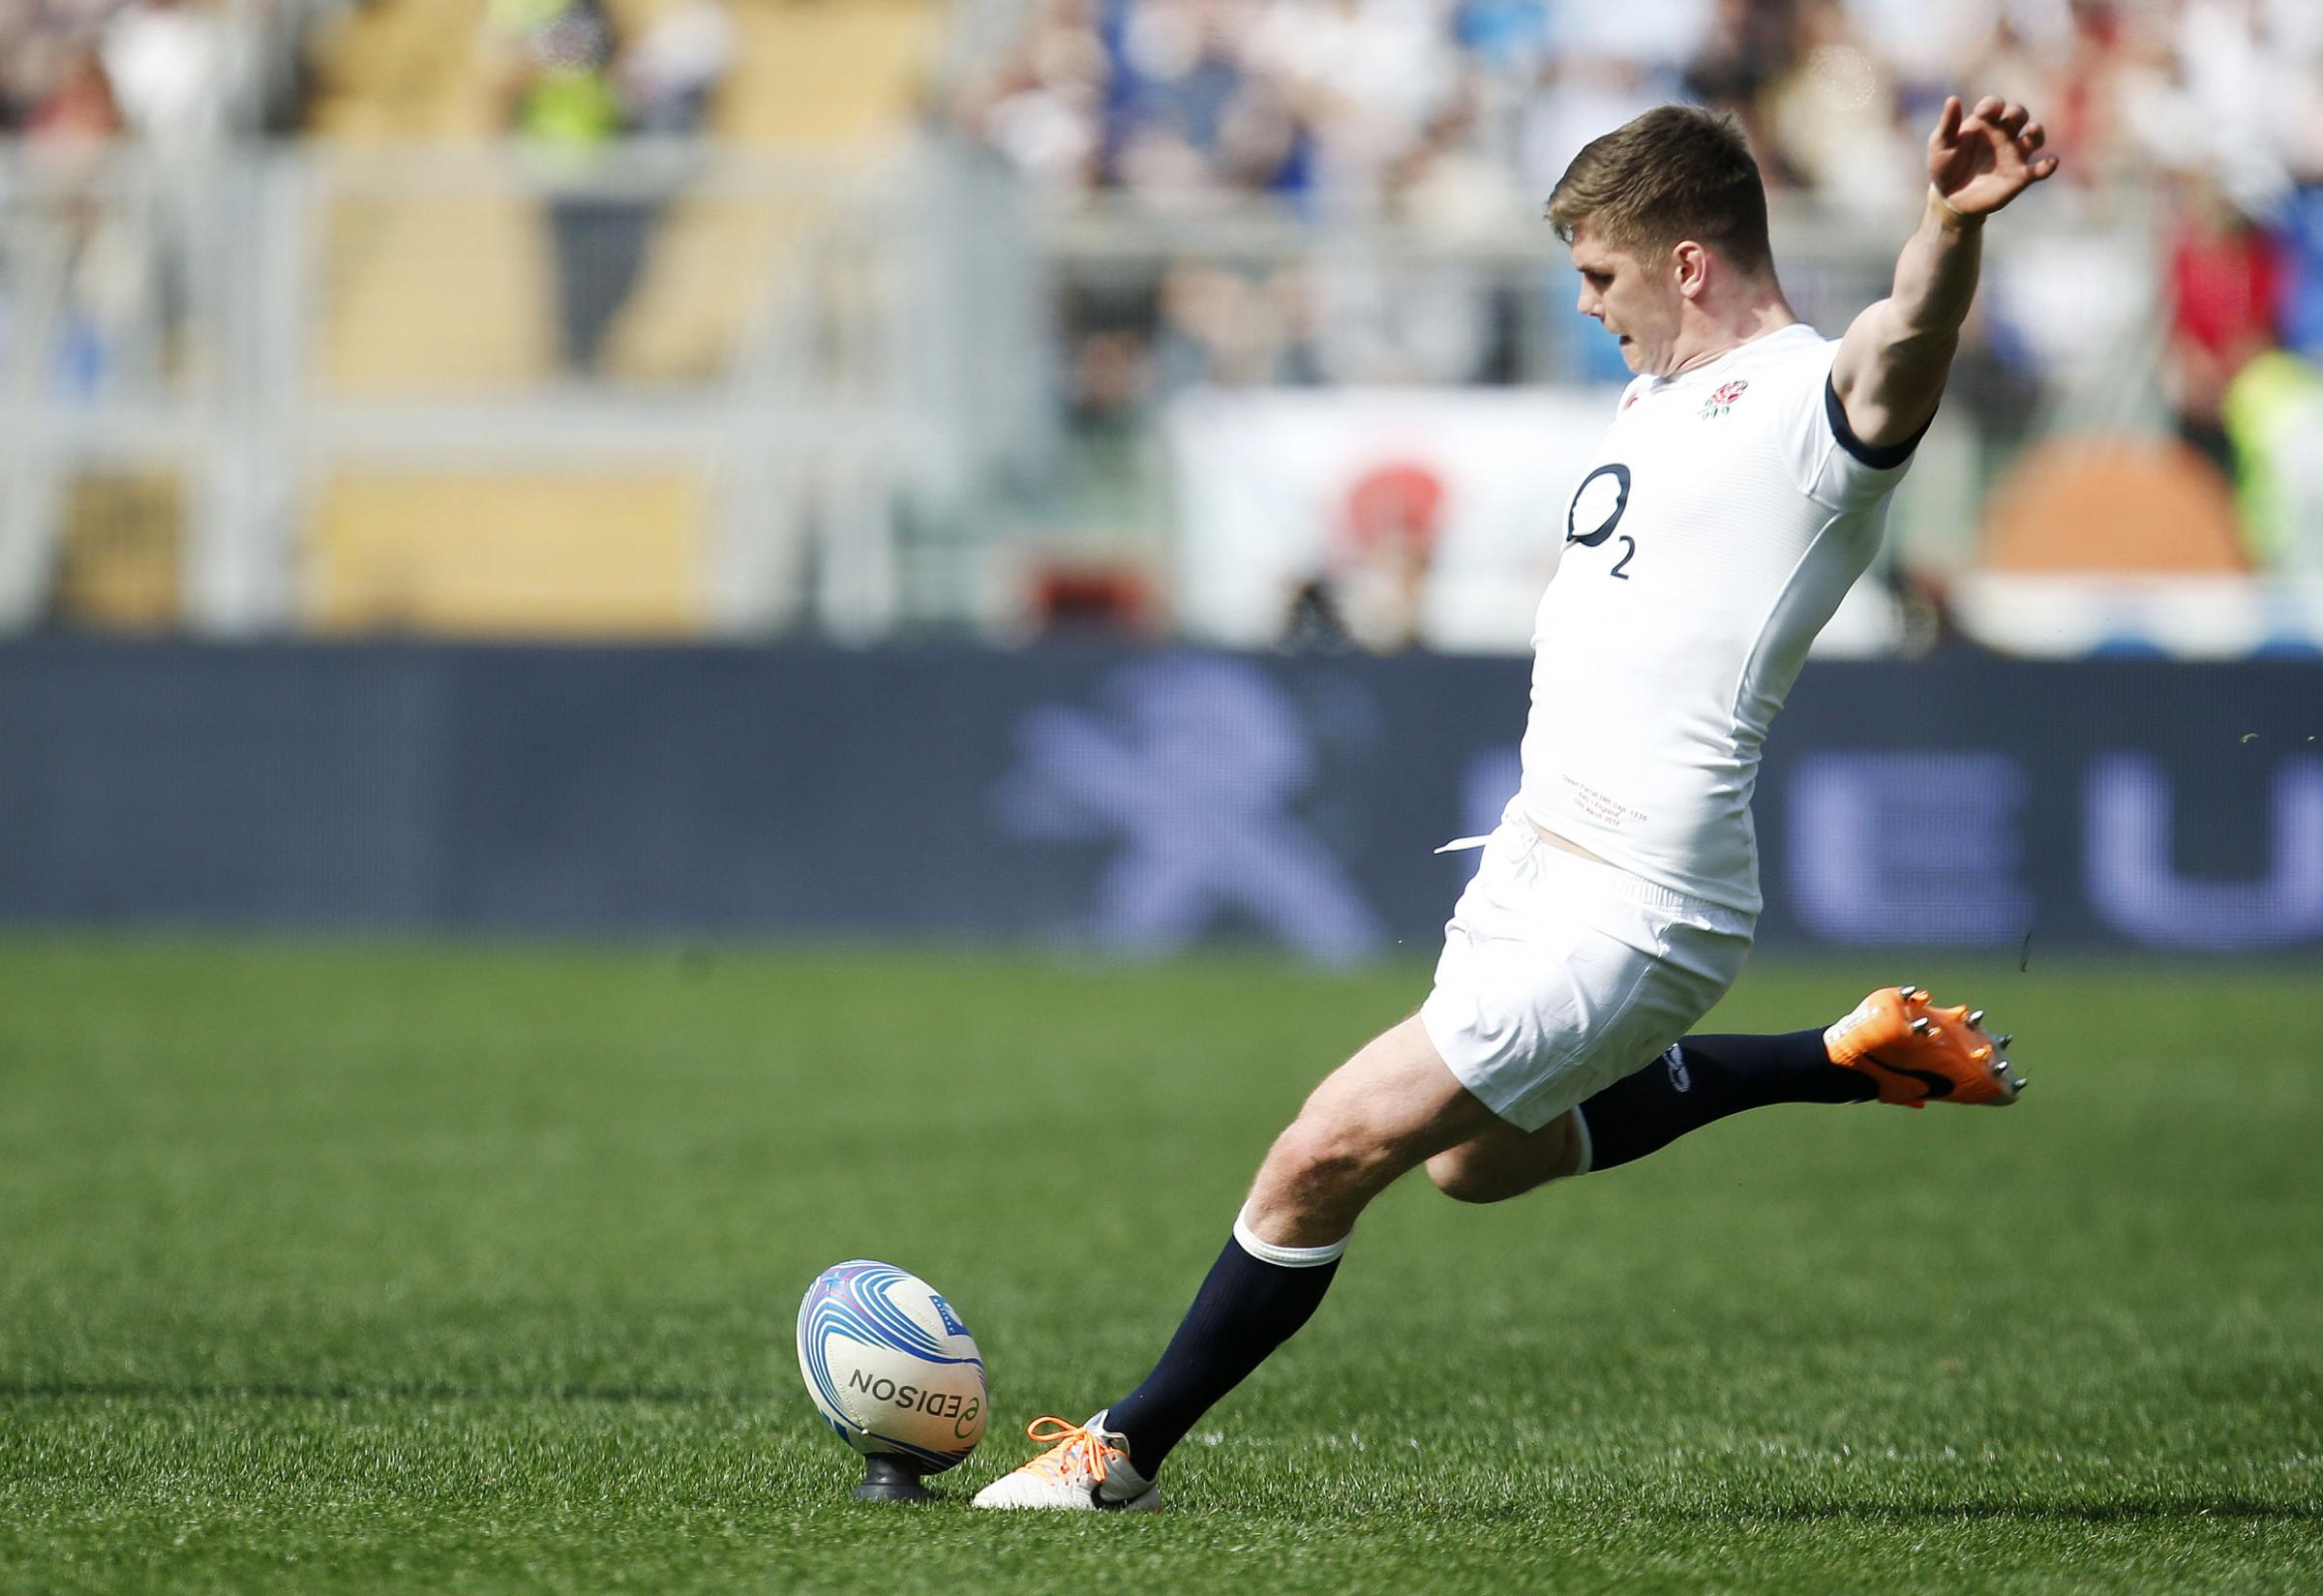 Owen Farrell on kicking duty for England. Picture: Action Images